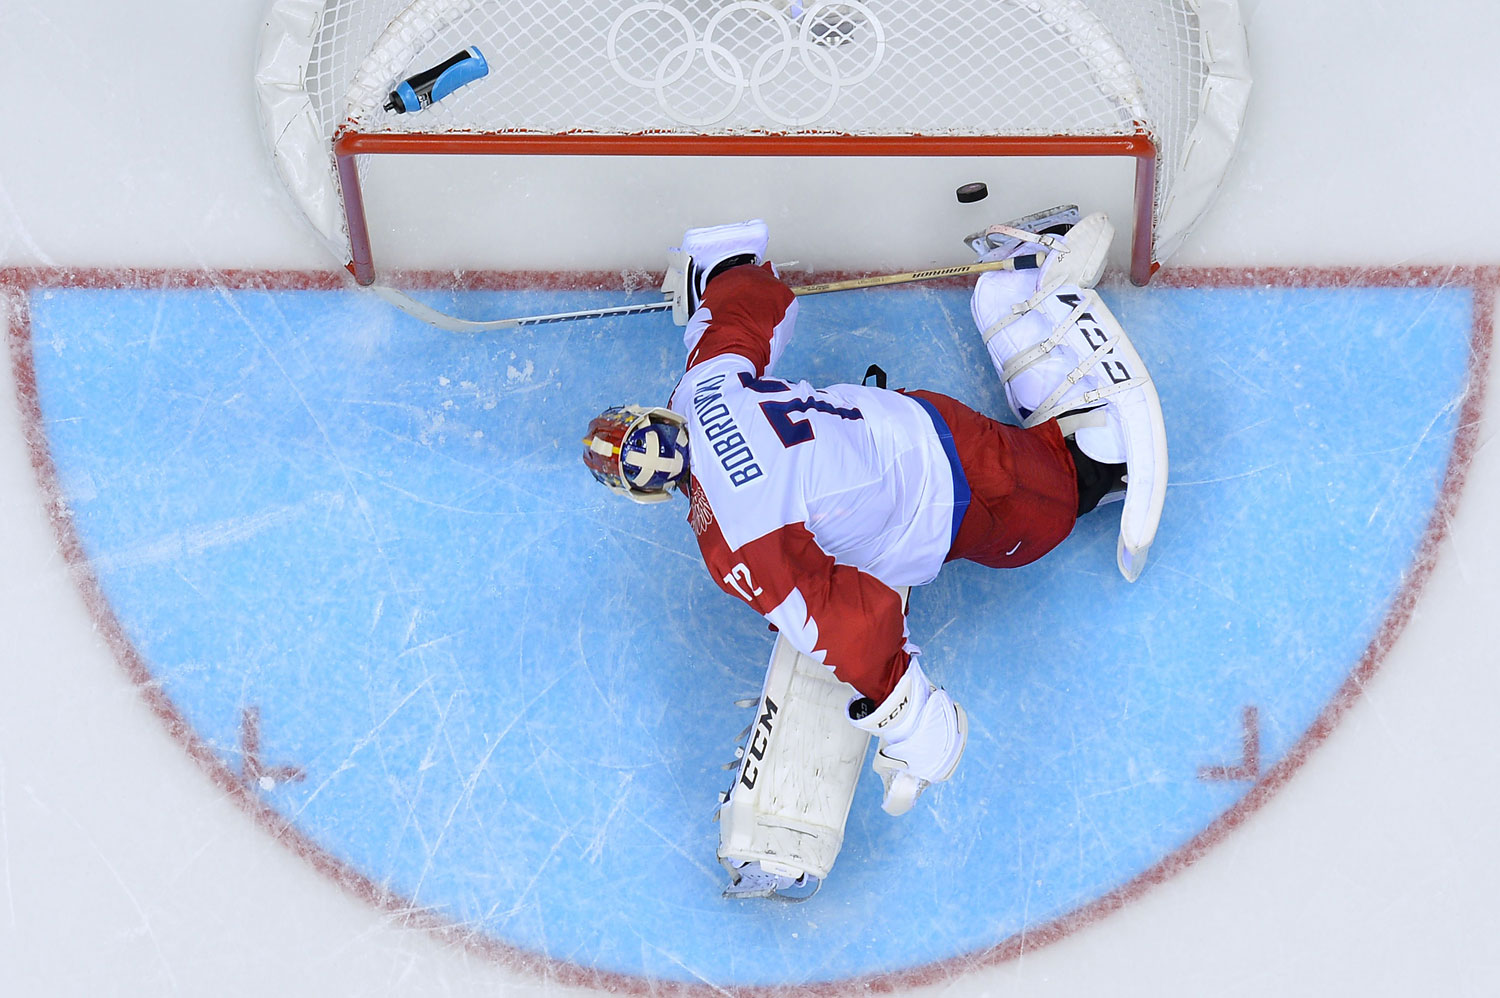 Russia's goalkeeper Sergei Bobrovski fails to stop a penalty during the Men's Ice Hockey Group A match USA vs Russia at the Bolshoy Ice Dome during the Sochi Winter Olympics on February 15, 2014 in Sochi.